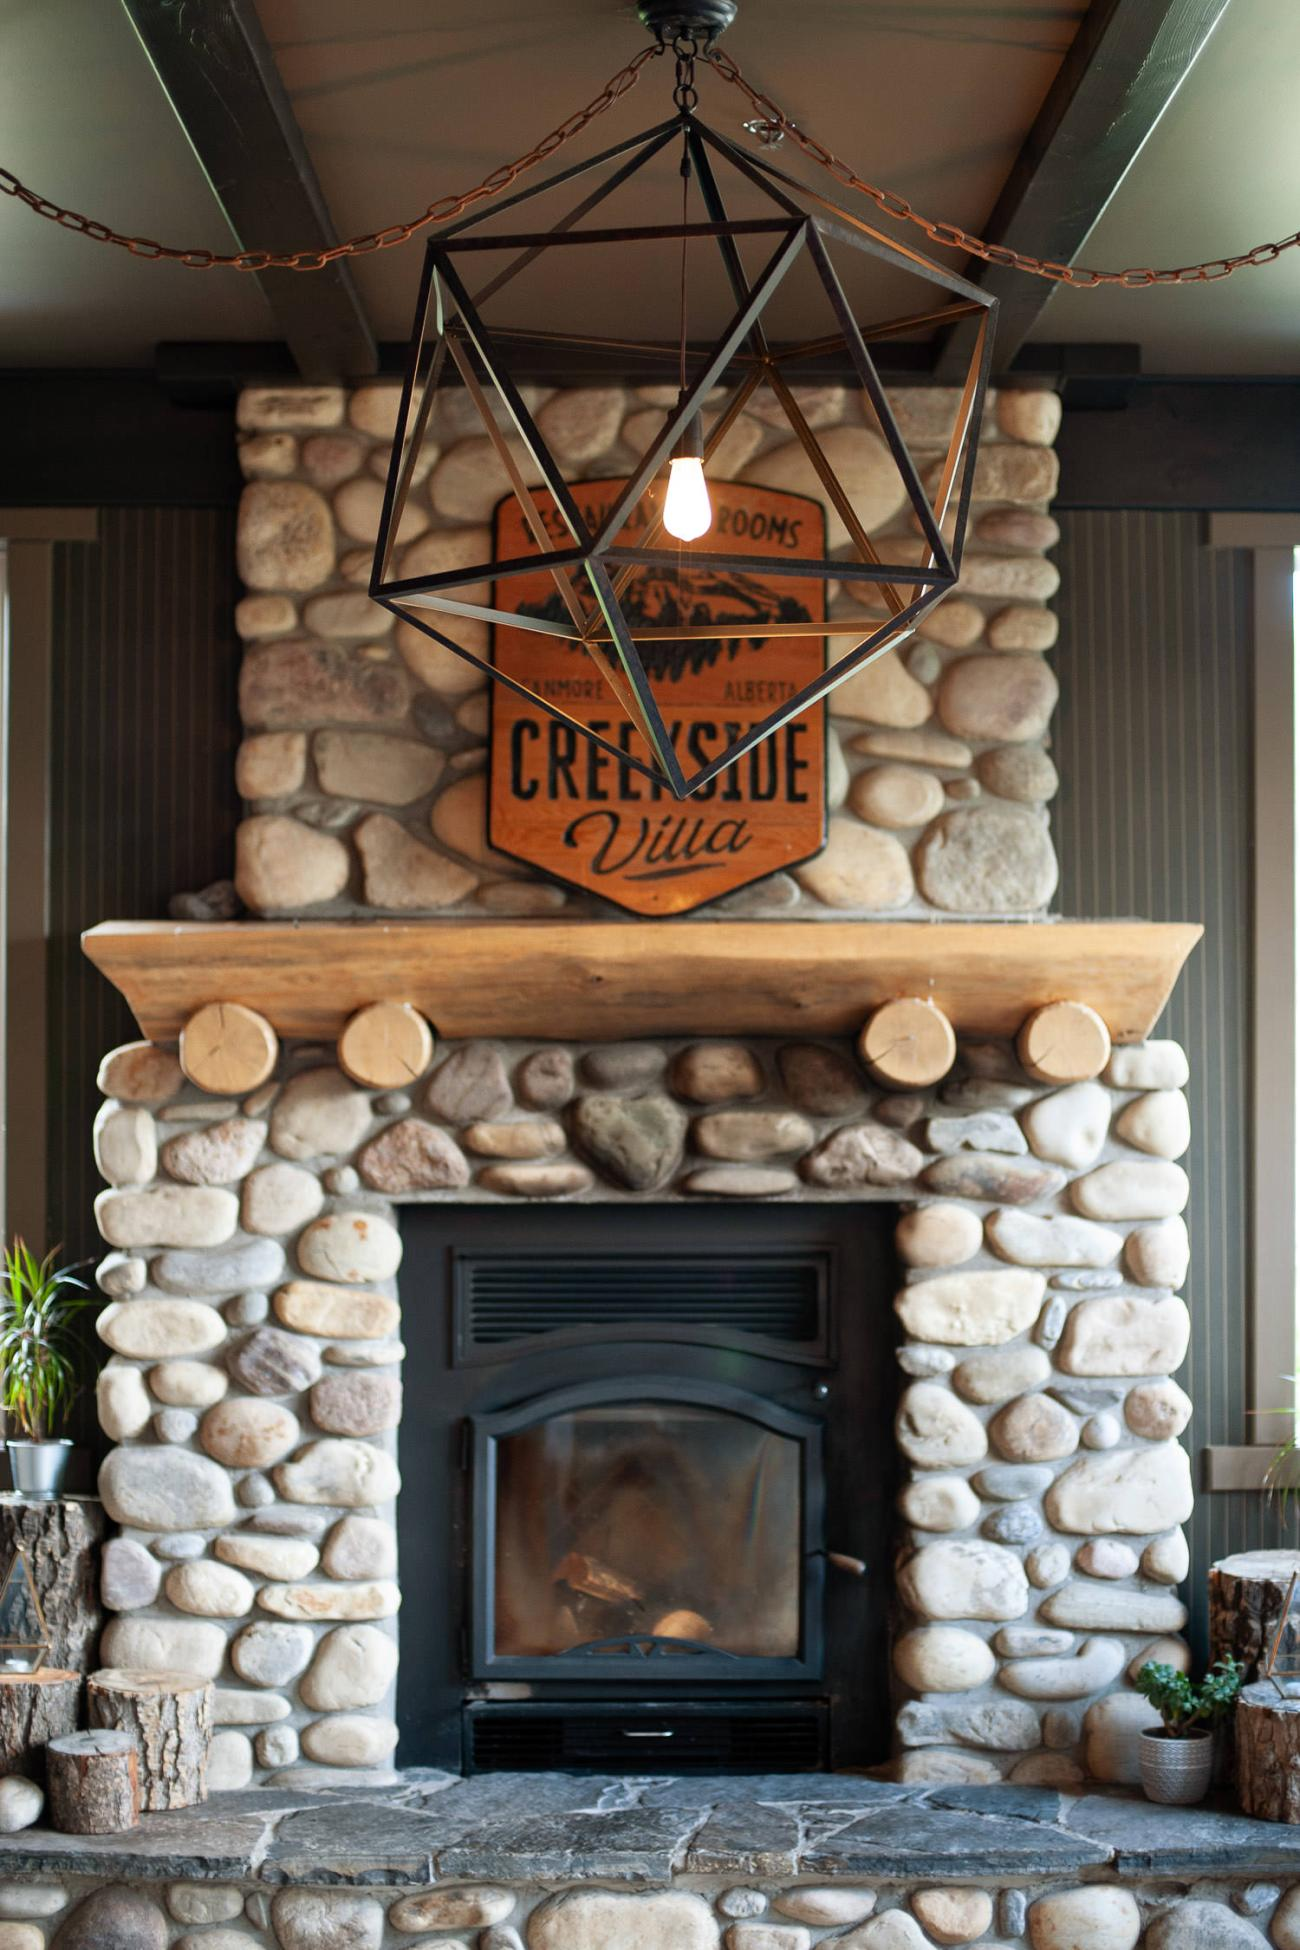 Rustic fireplace at Creekside Villa captured by Tara Whittaker Photography